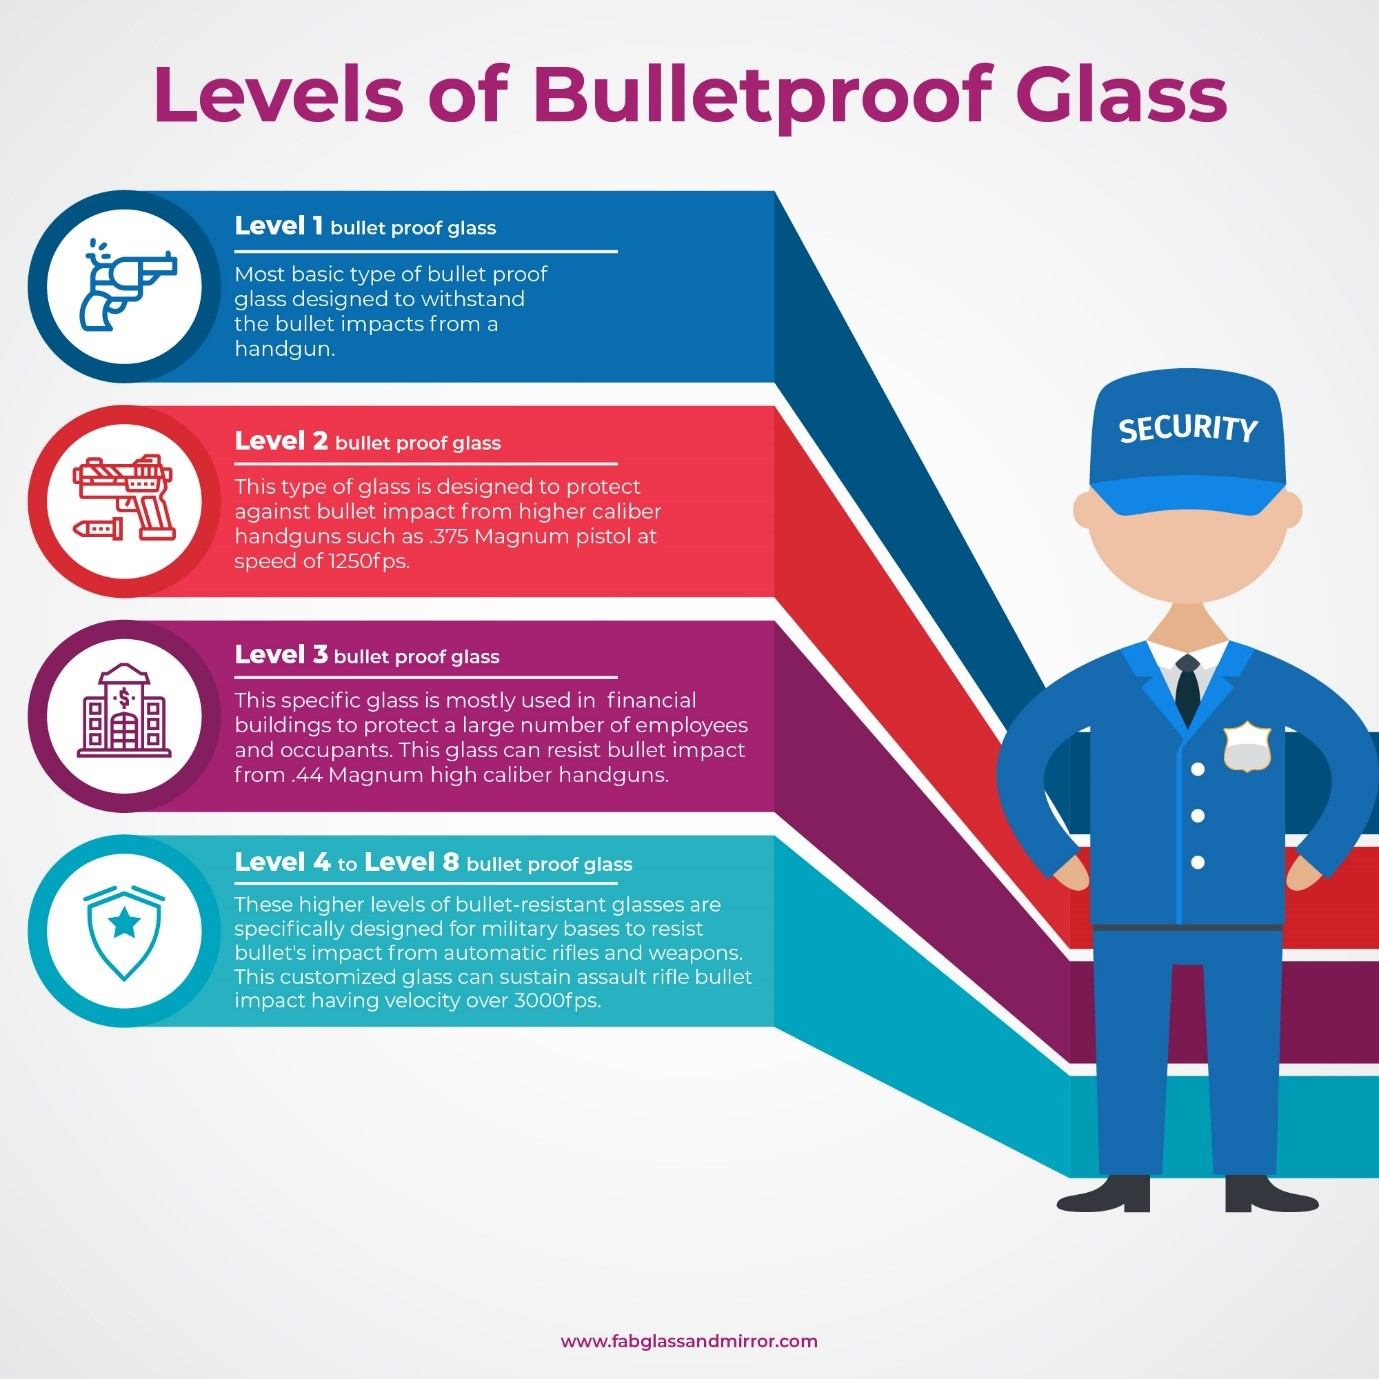 How bulletproof glass protects against different bullets?